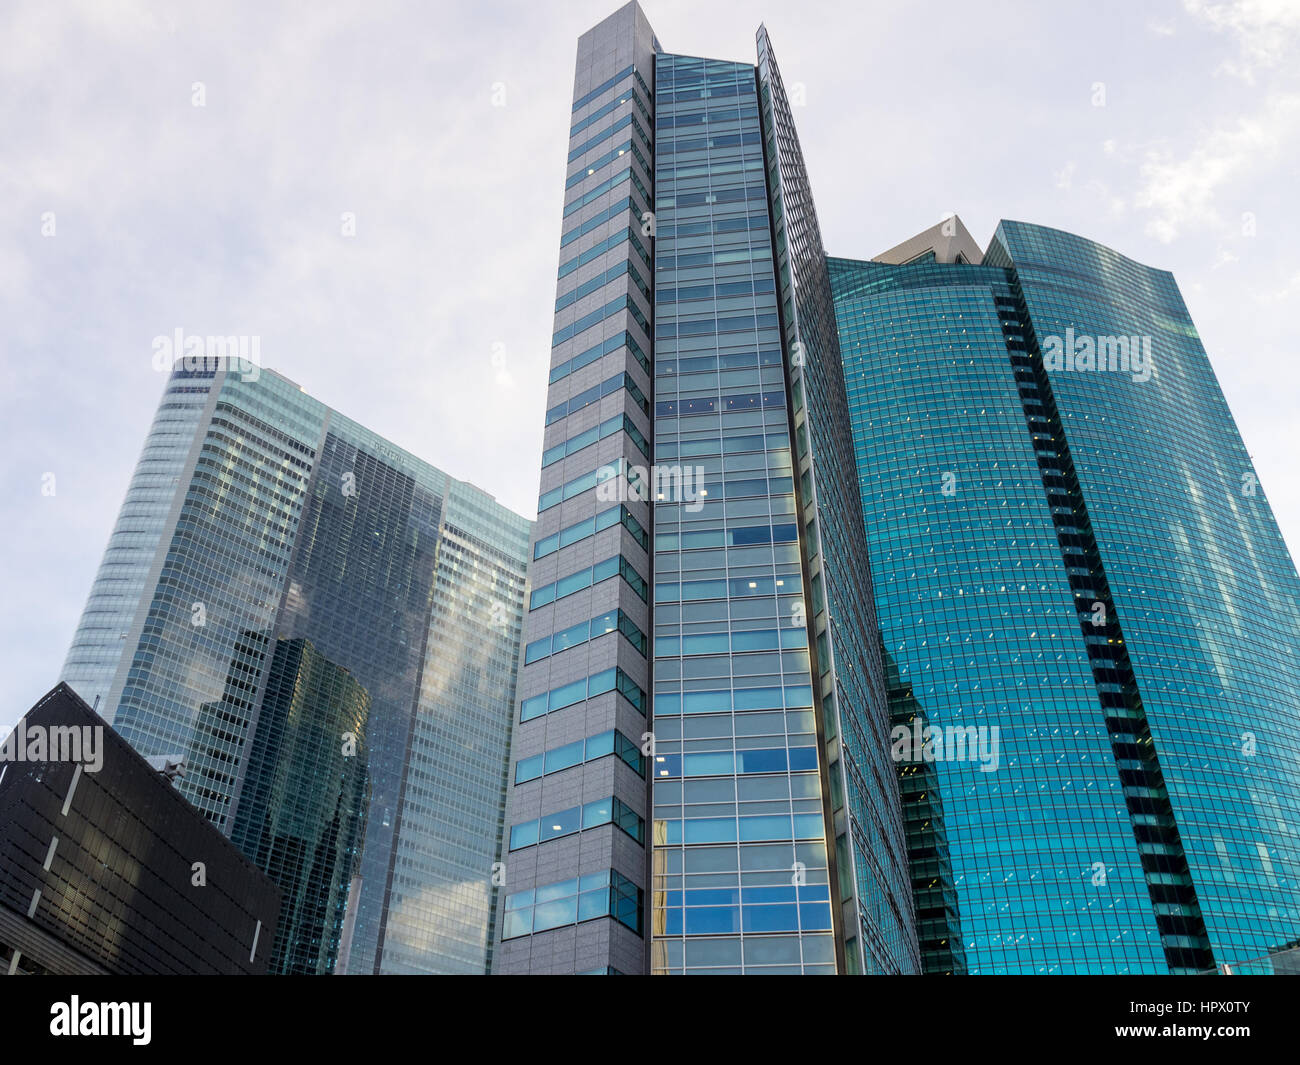 Glass facade of office towers in Minato, Tokyo. - Stock Image